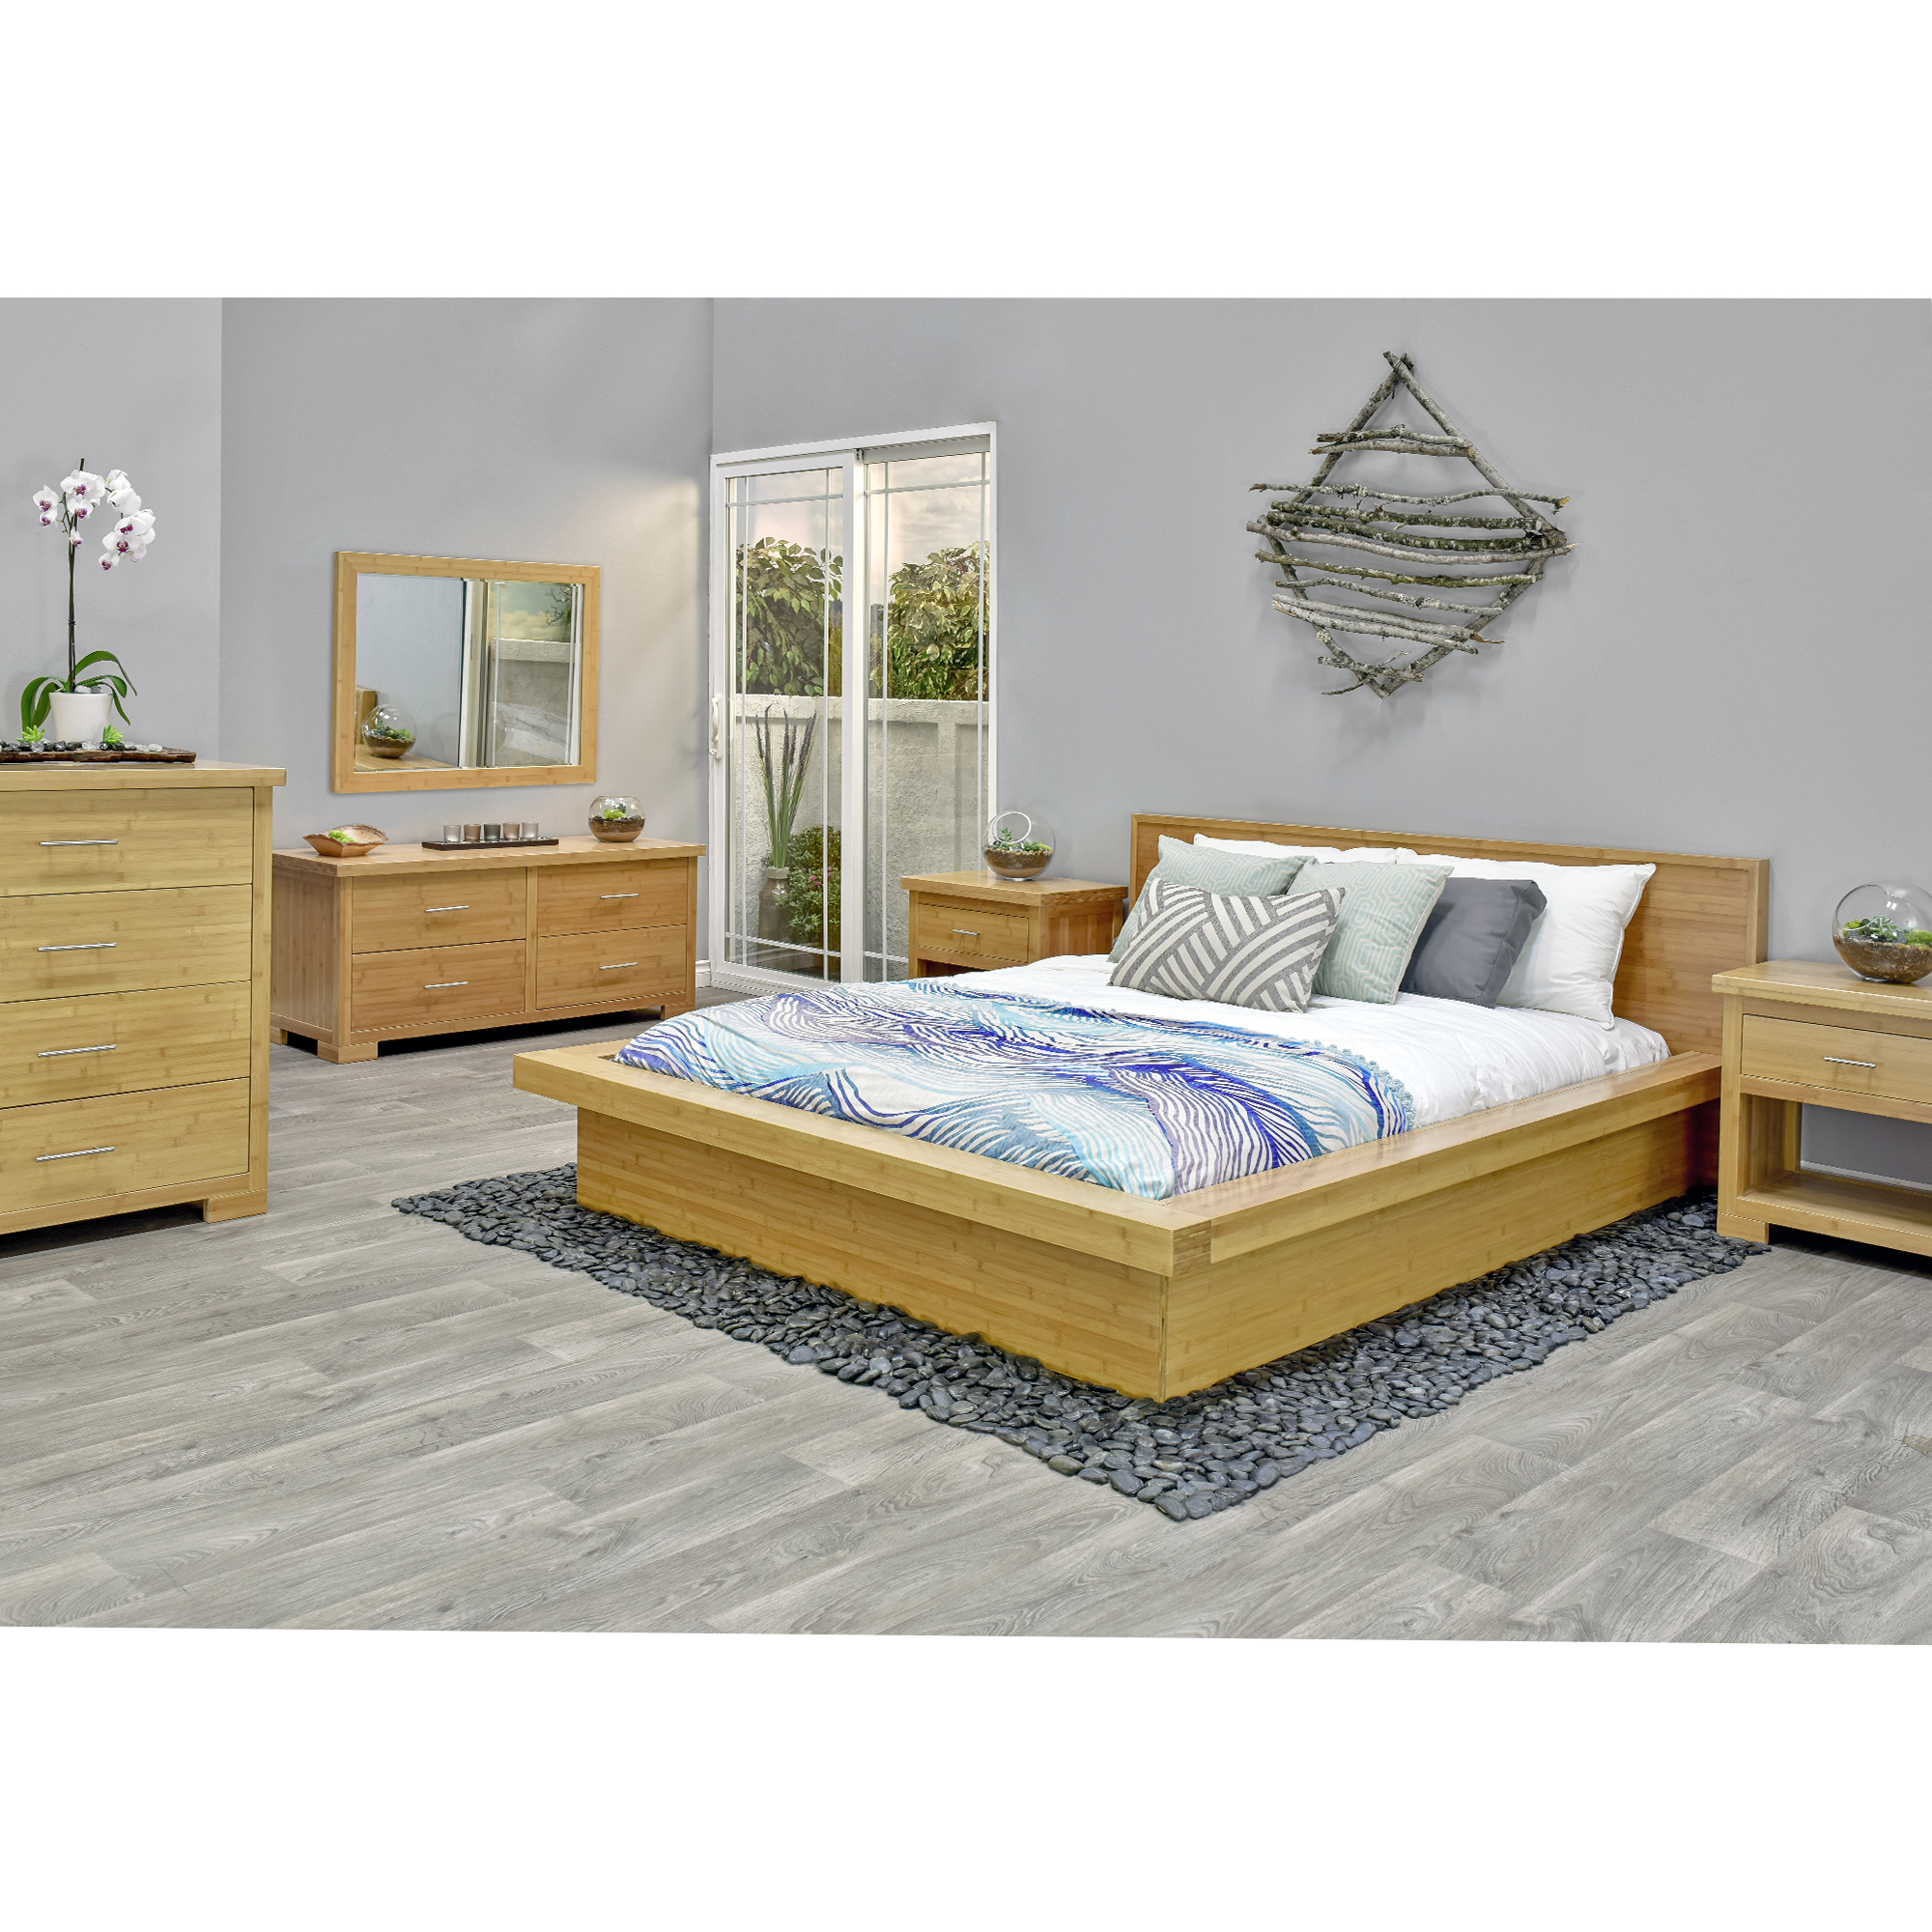 3 Piece Nara Bamboo Bedroom Set